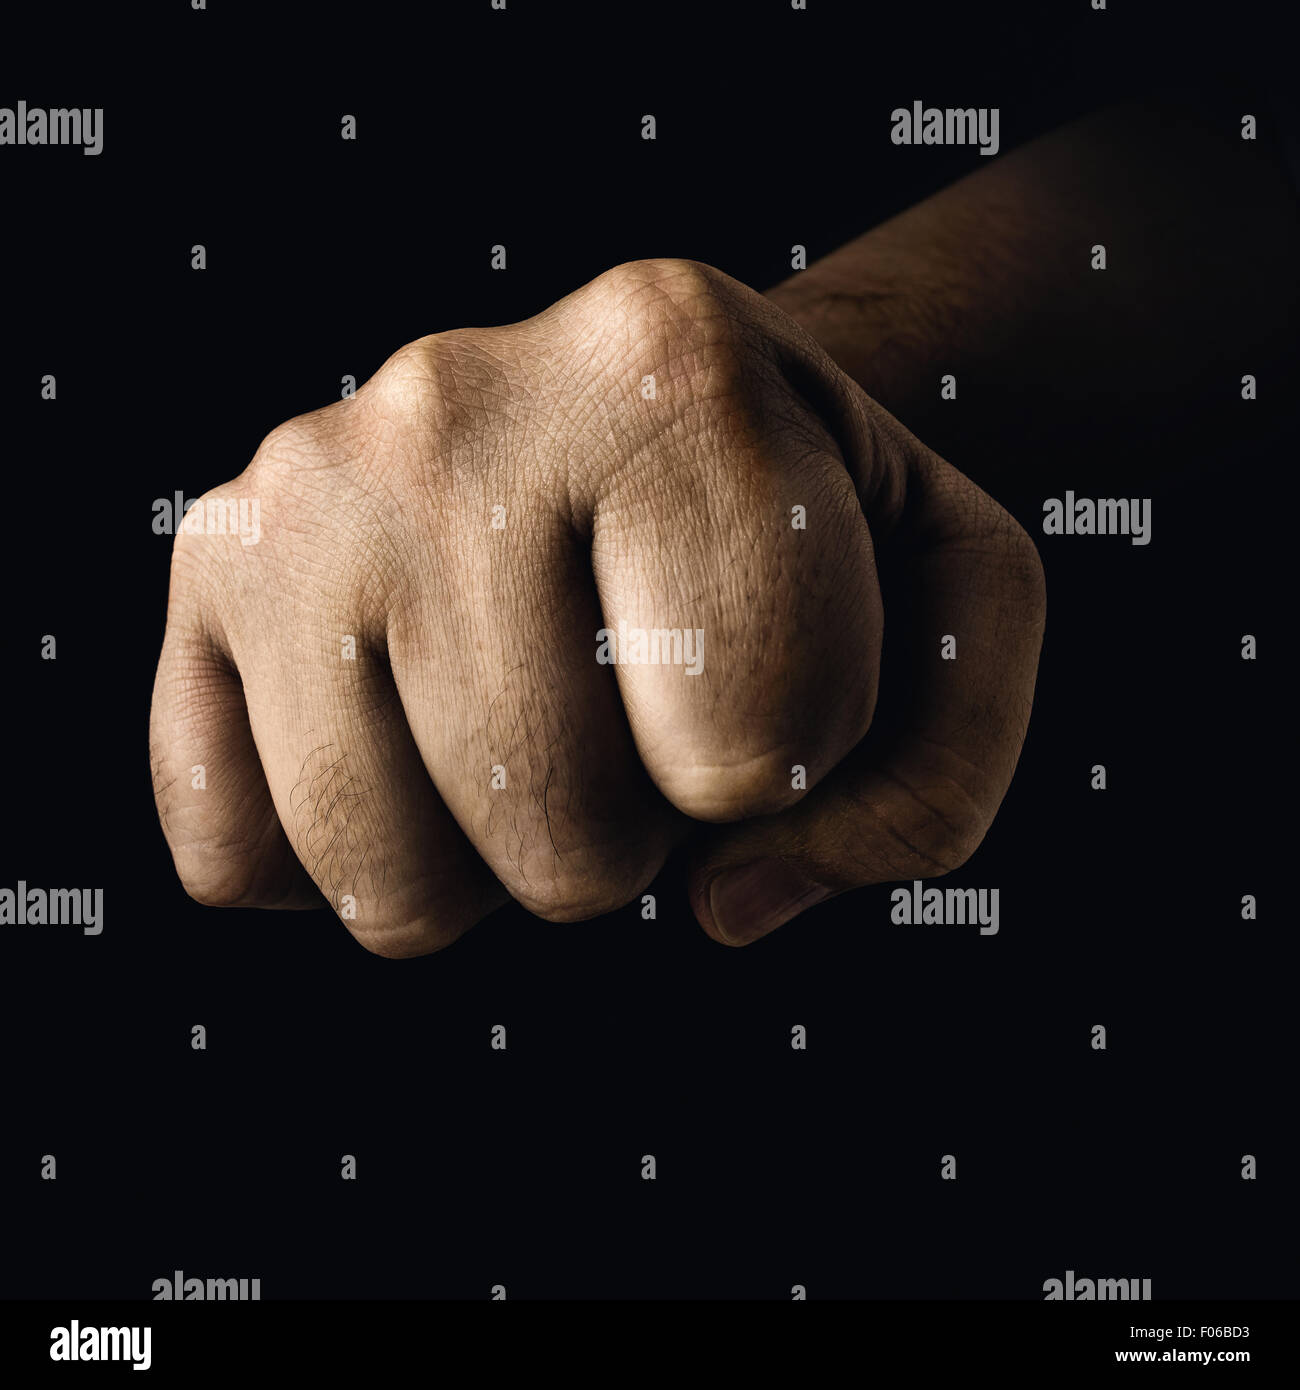 Closed fist in a concept of fight sports. - Stock Image